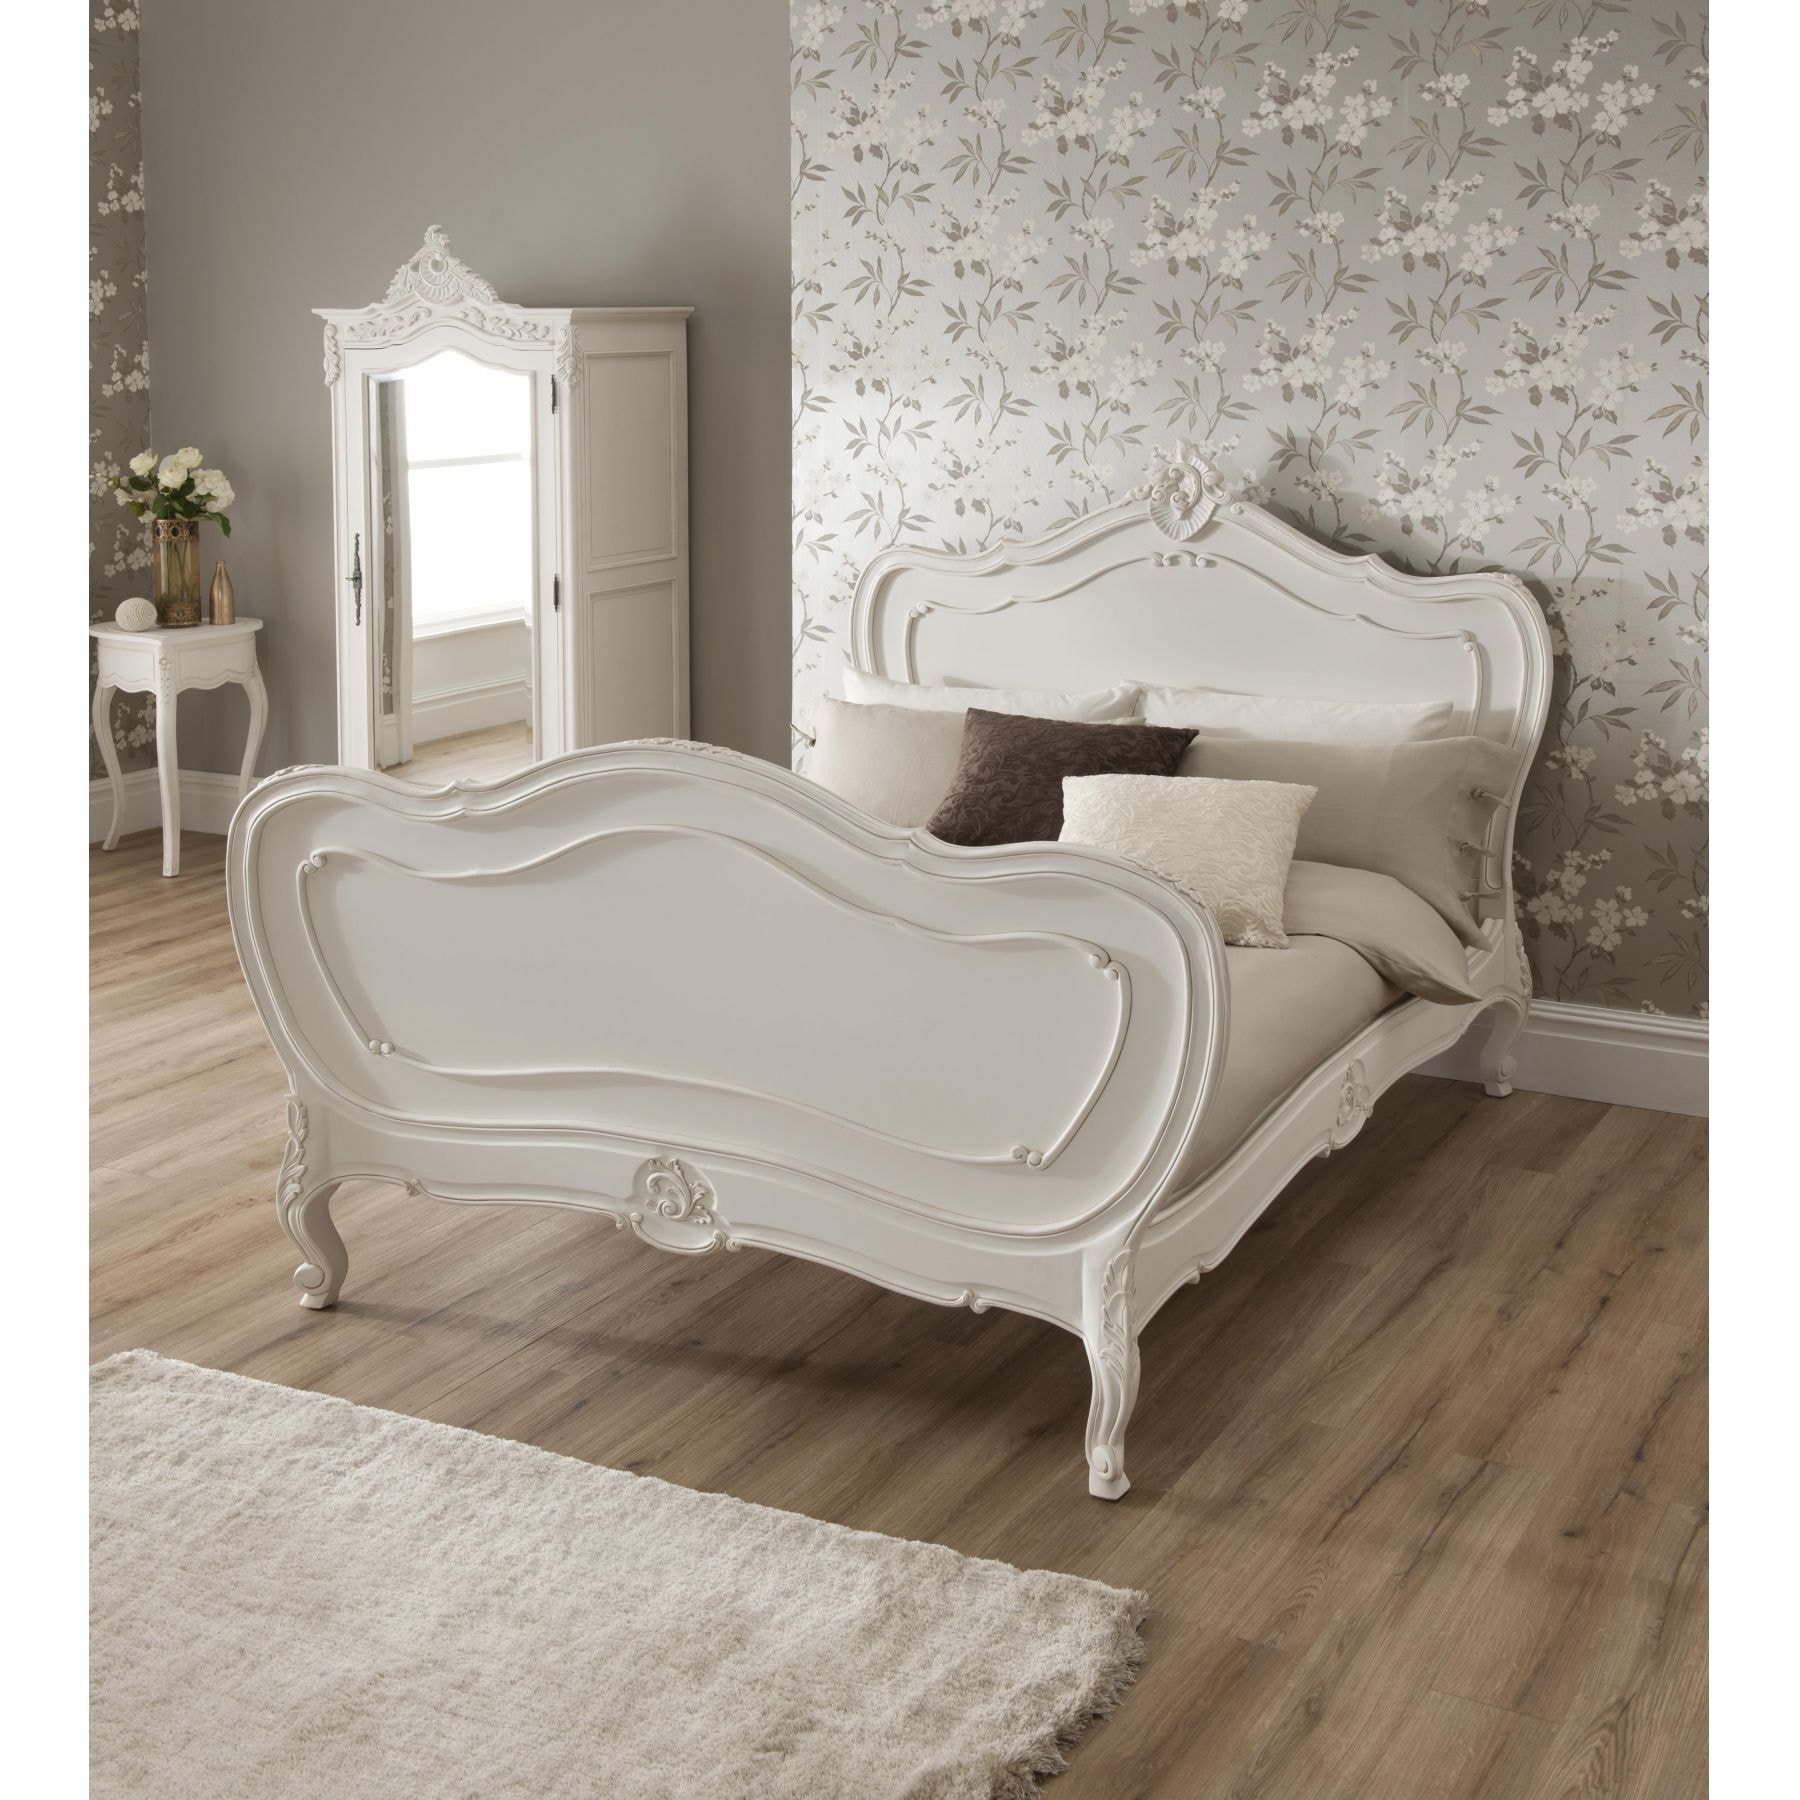 La Rochelle Lille Antique French Bed Is A Wonderful Bed